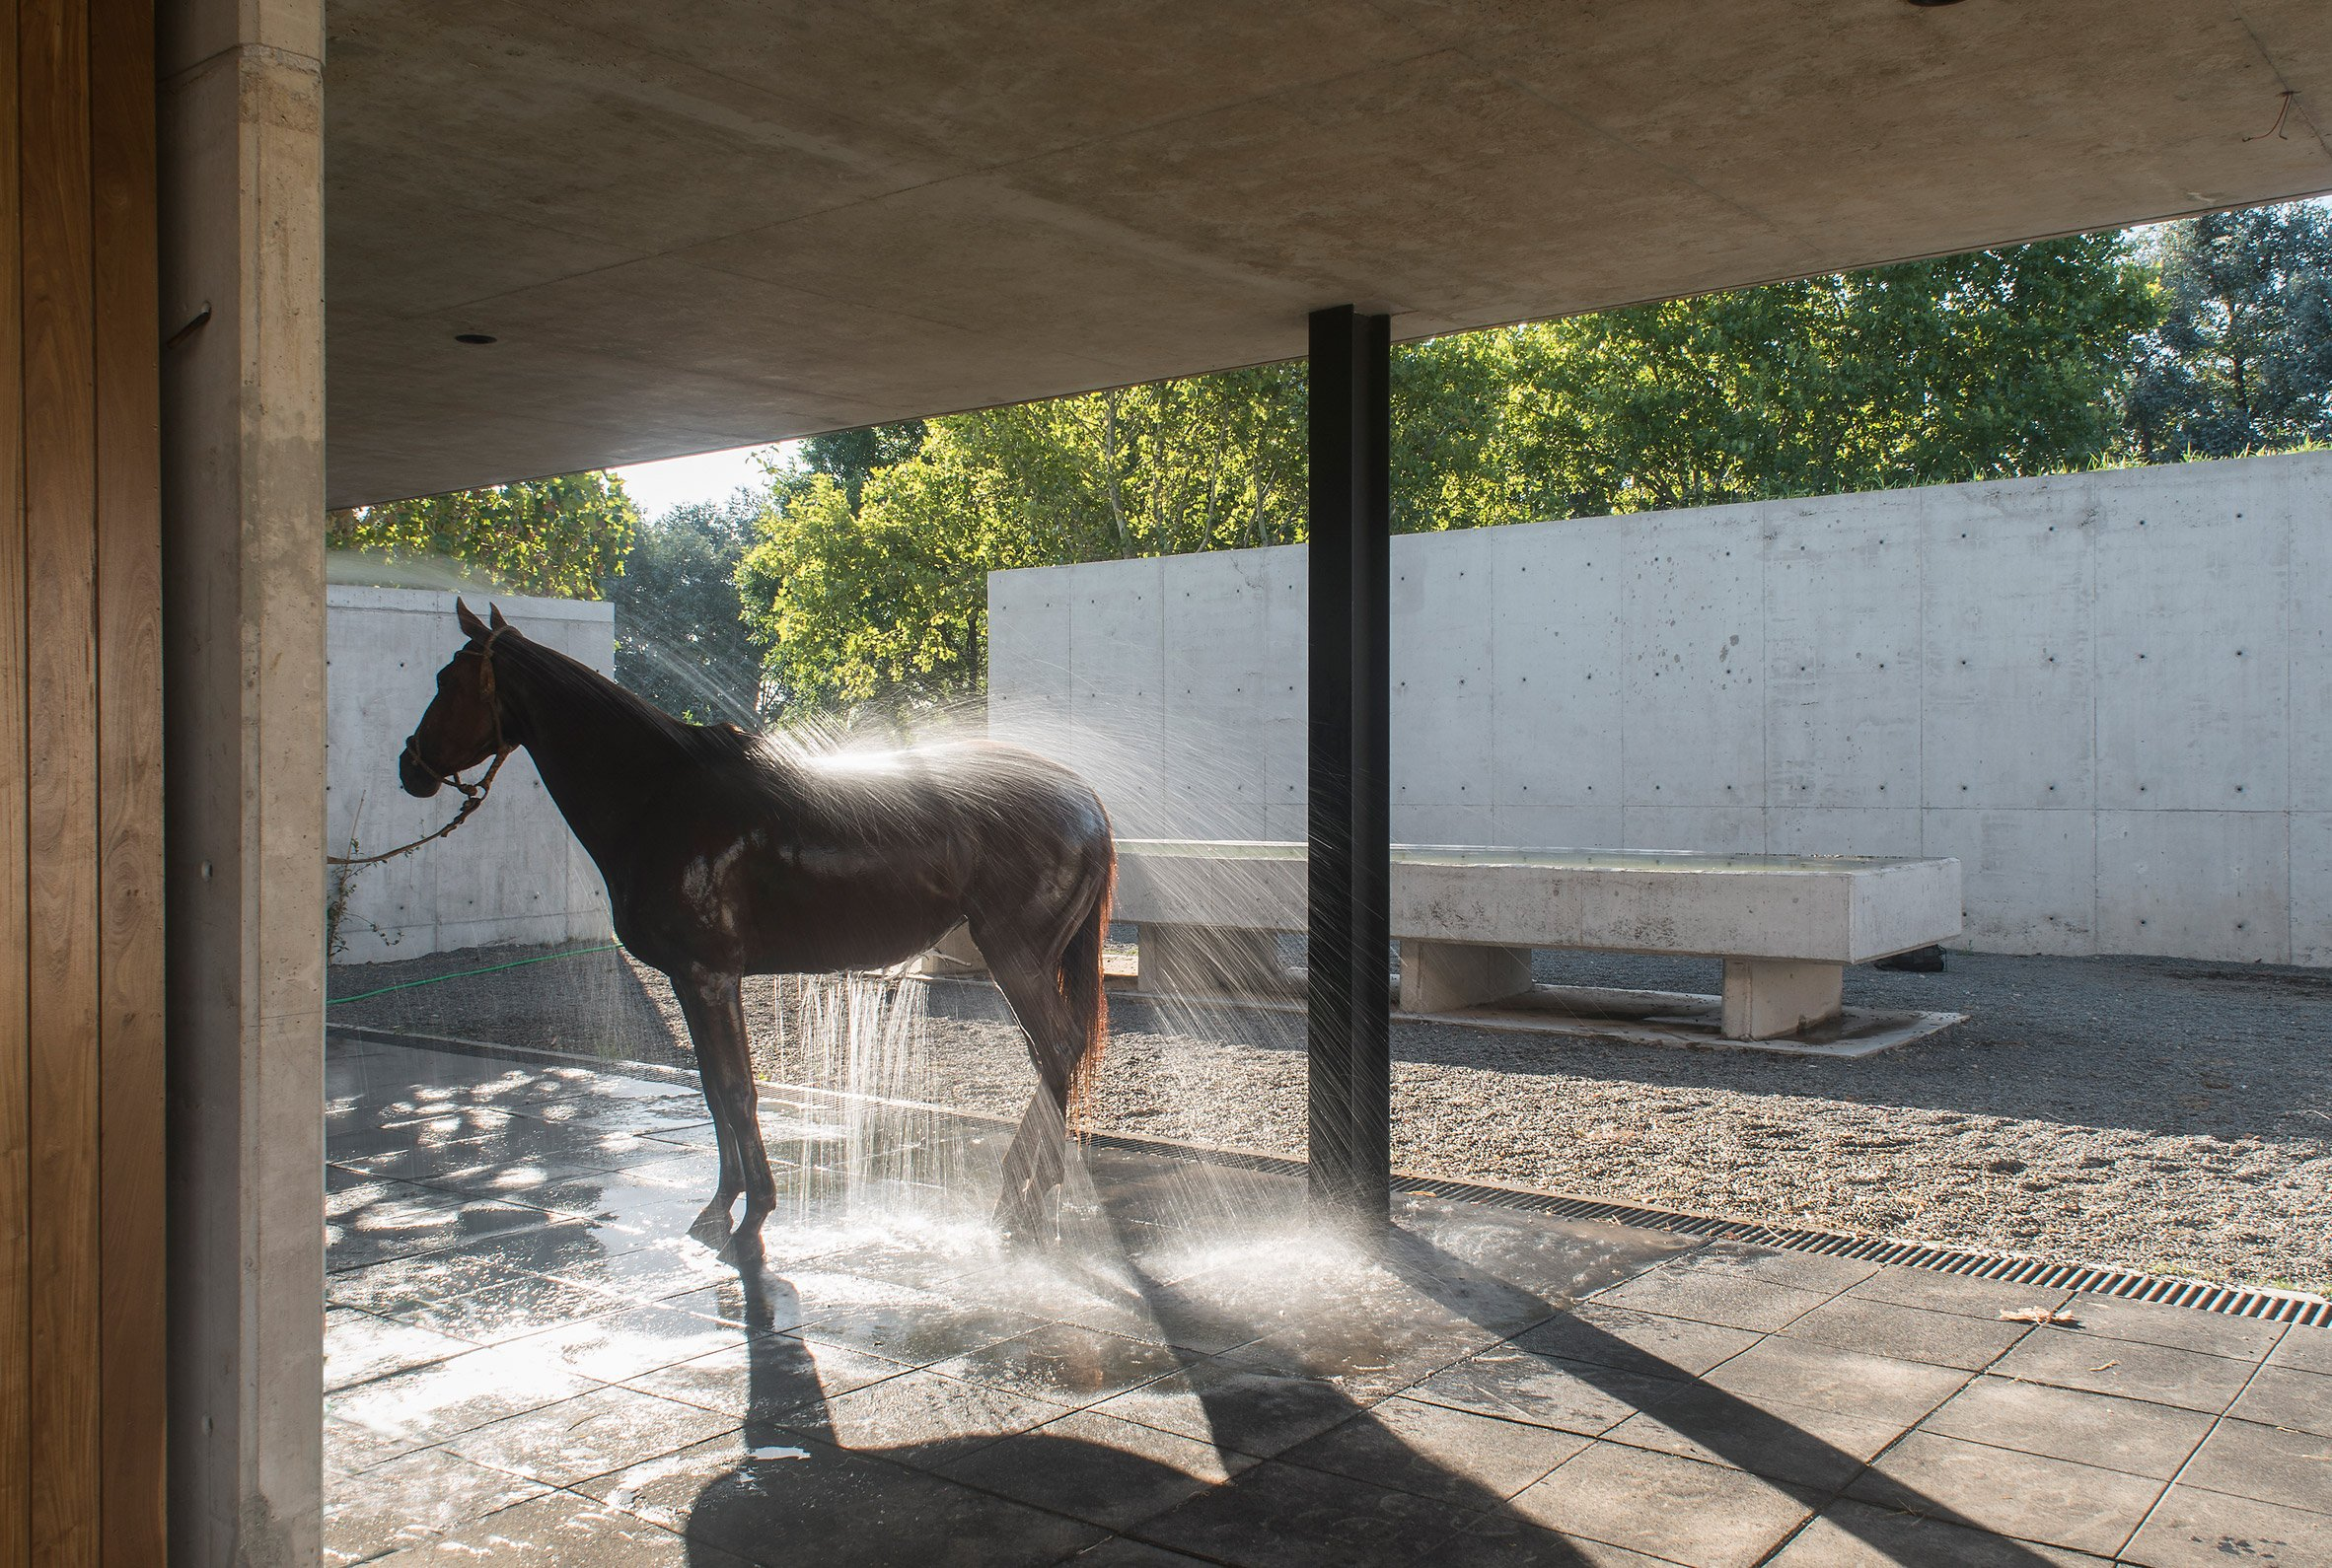 Polo stables features grassy roof for horses to graze and spectators